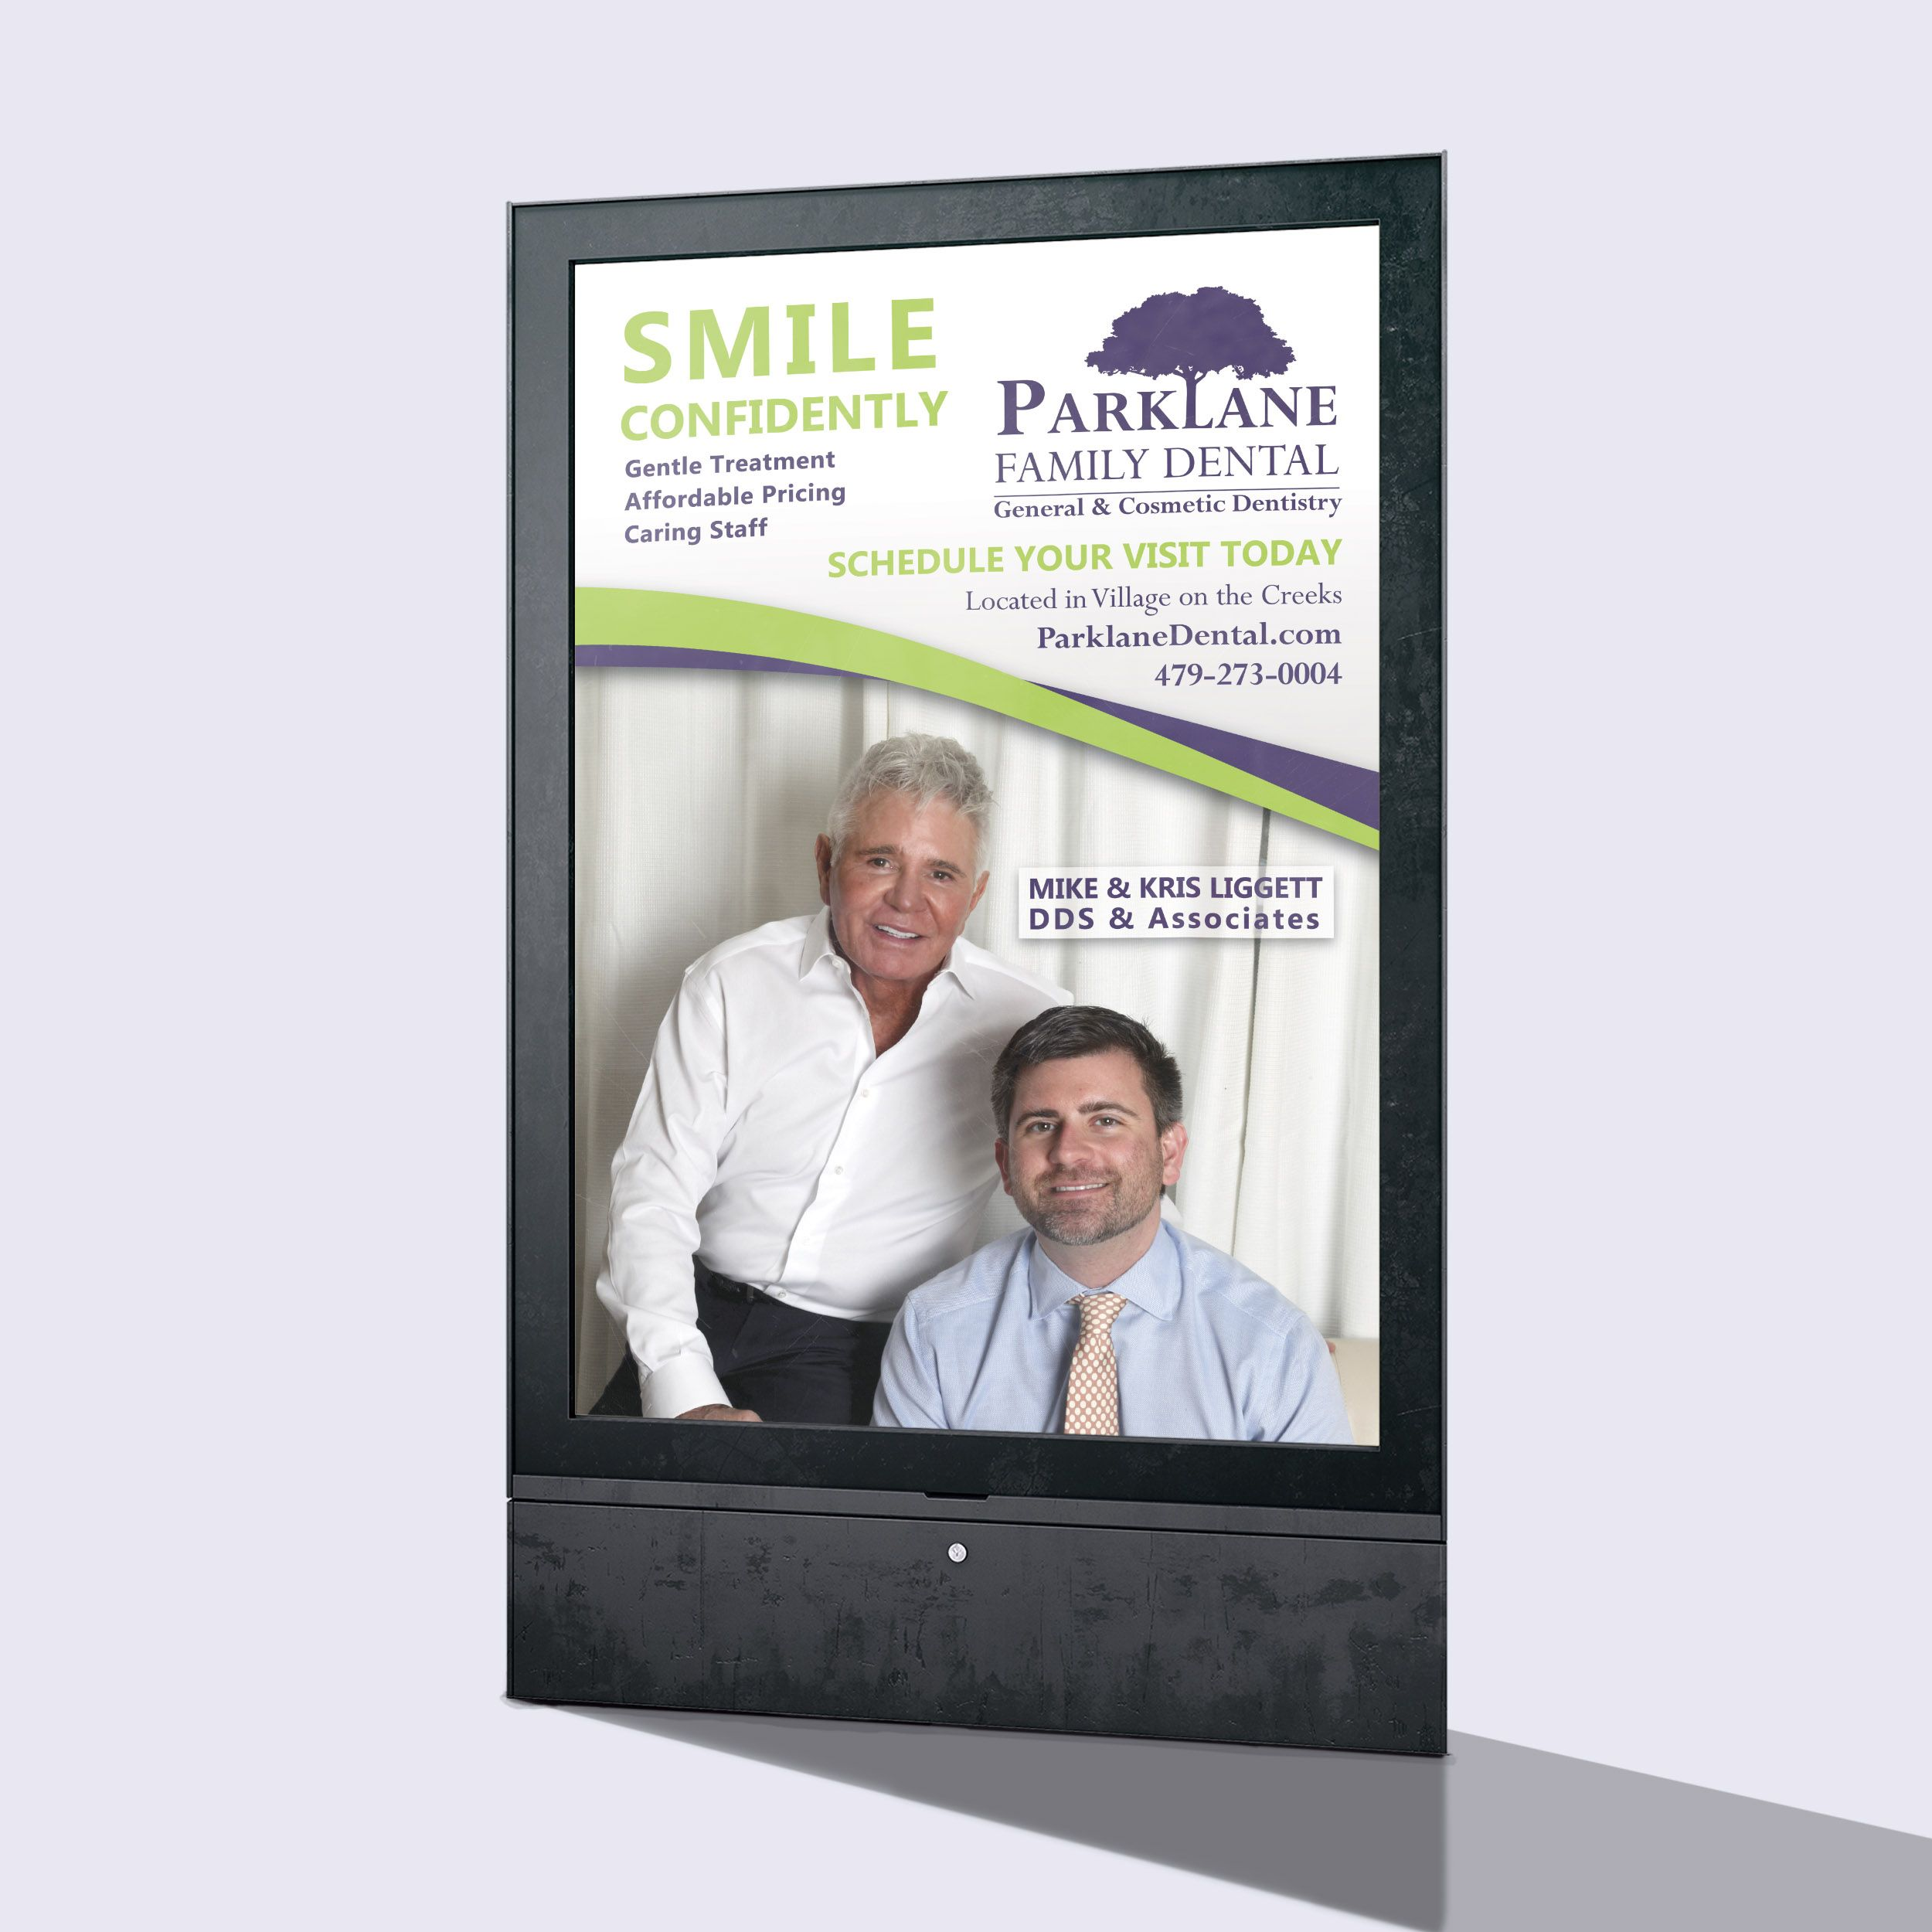 Parklane Family Dental Billboard